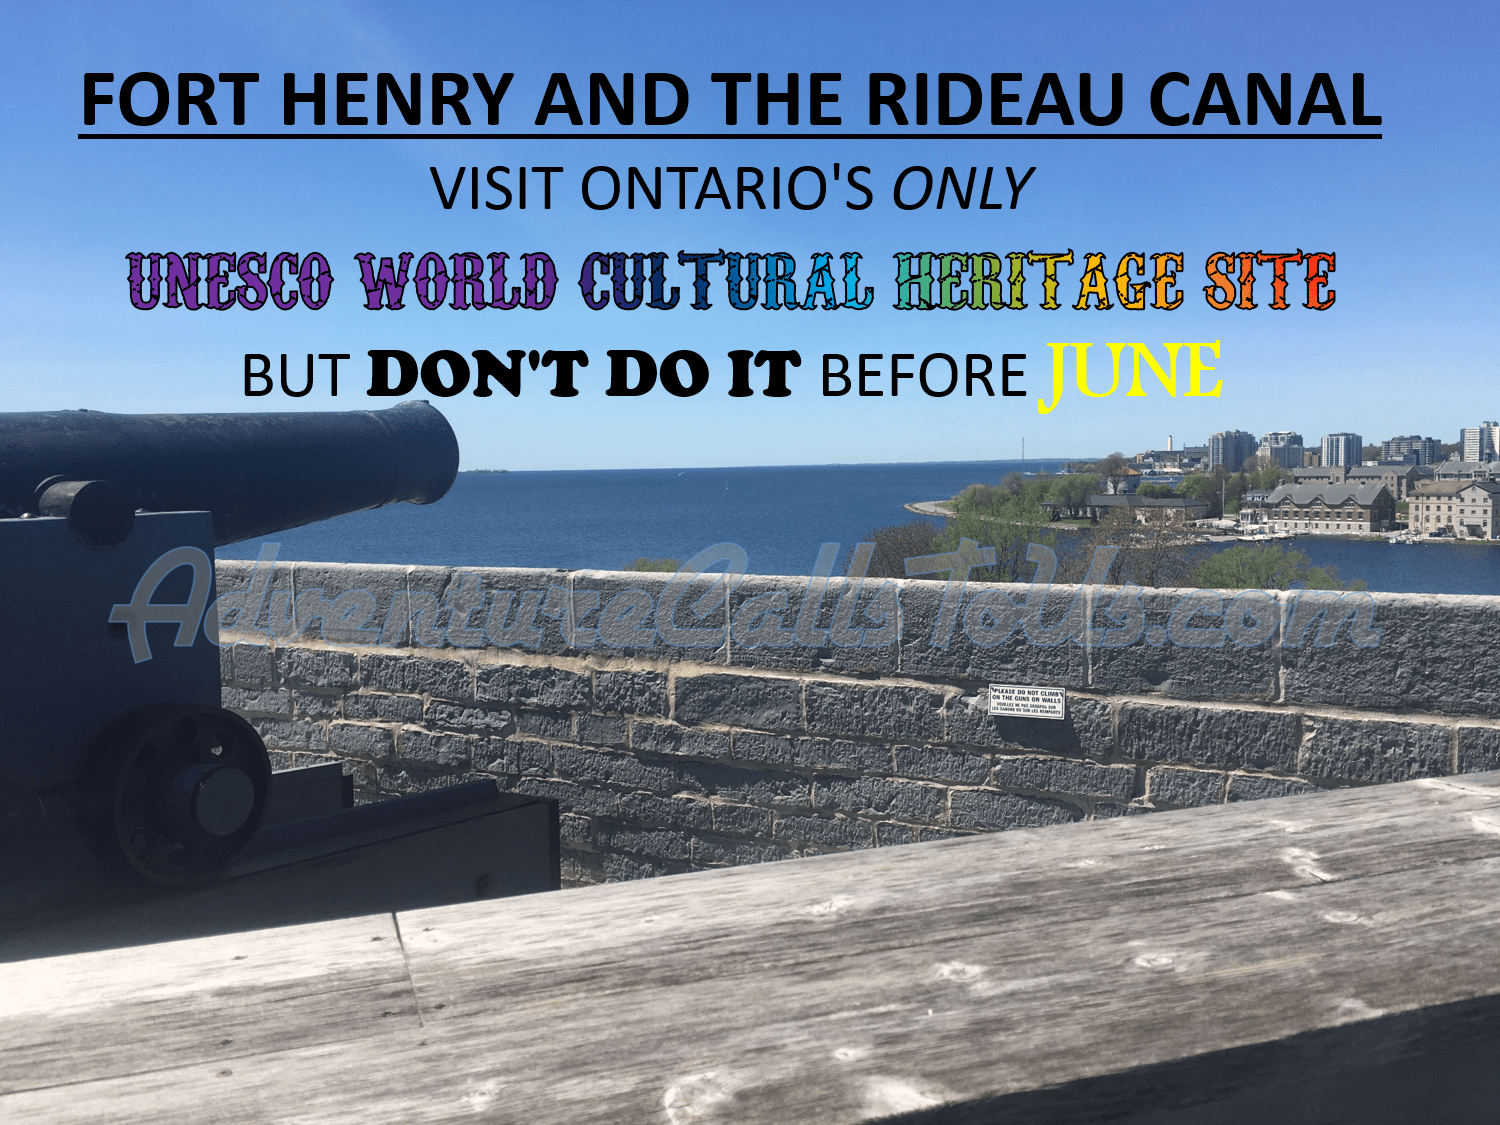 Fort henry and rideau canal